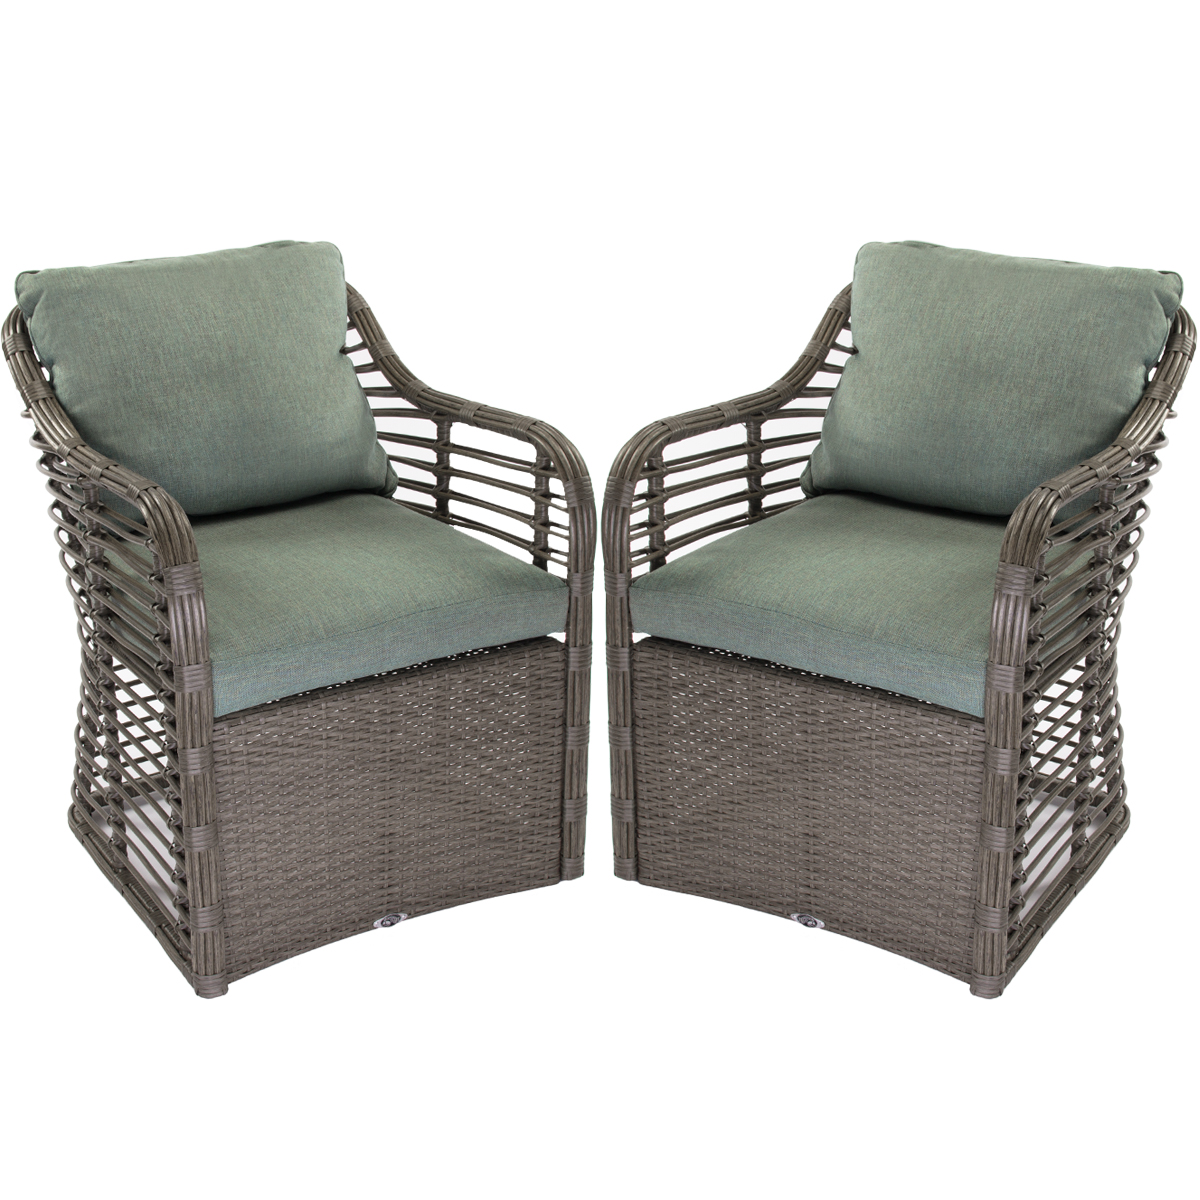 Hampton Bay Set of 2) Outdoor Wicker Lounge Chairs Cushio...